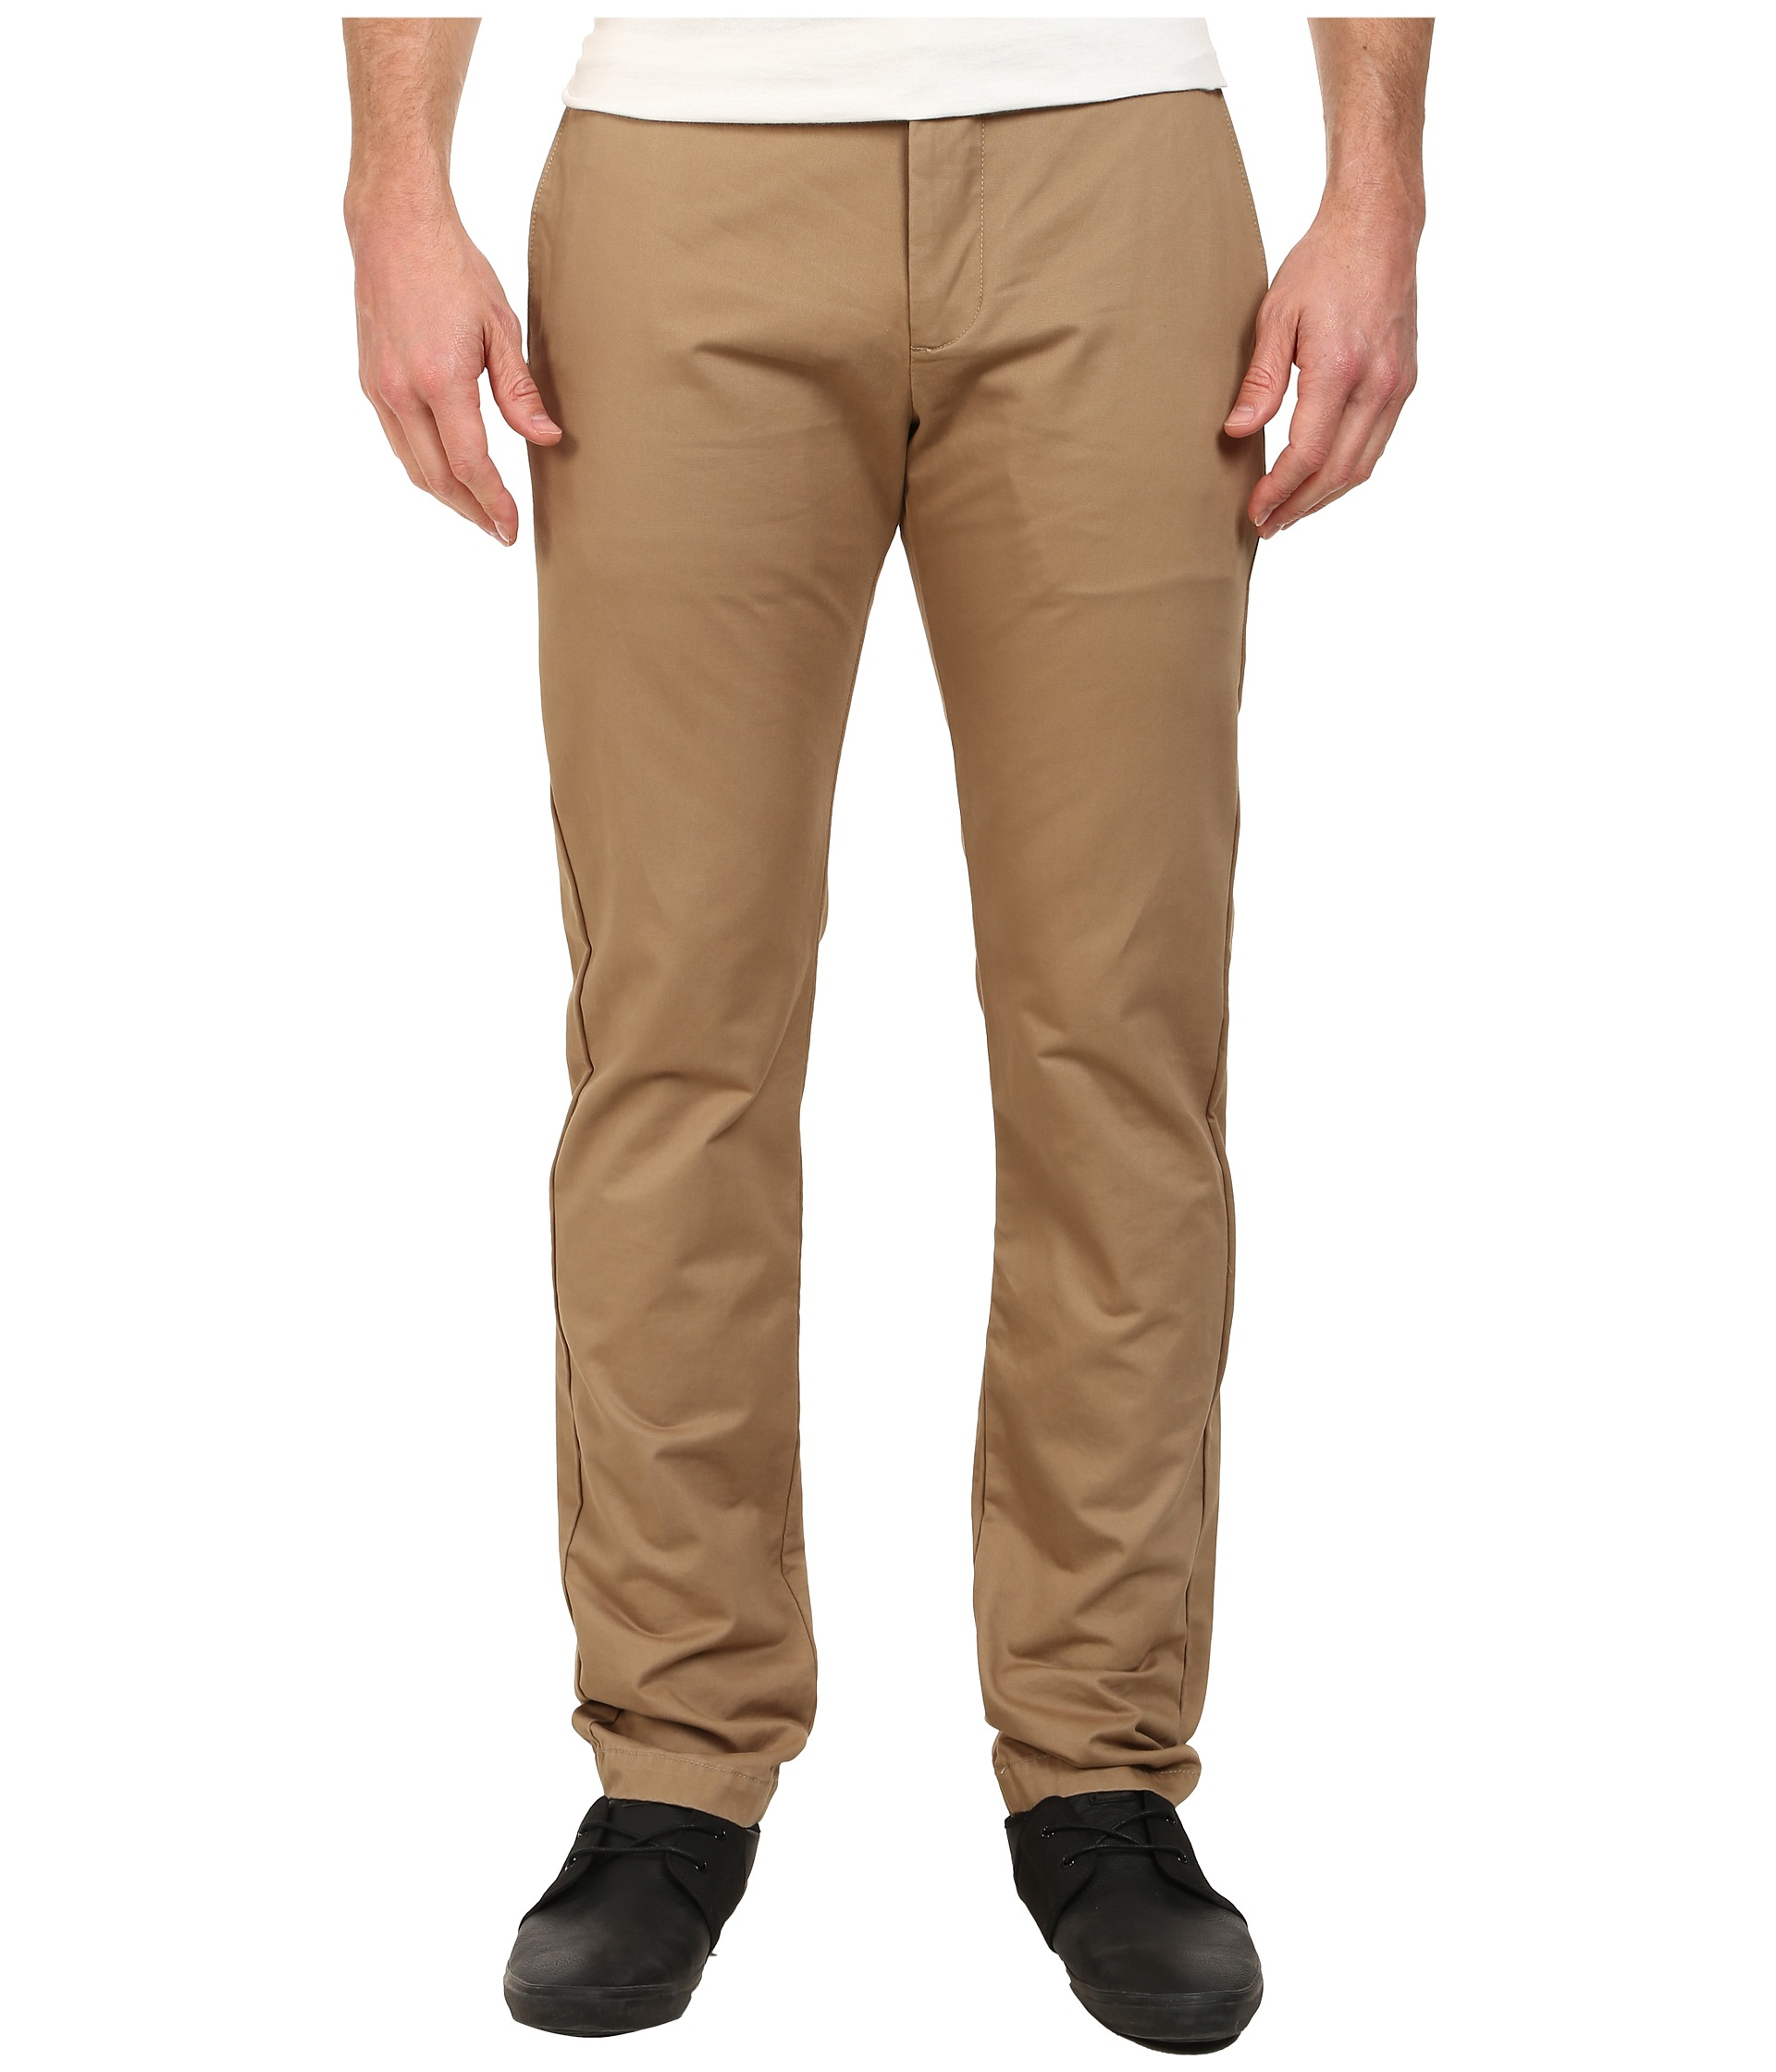 Try Volcom's modern mens pants with a comfortable tapered trim. Shop today!